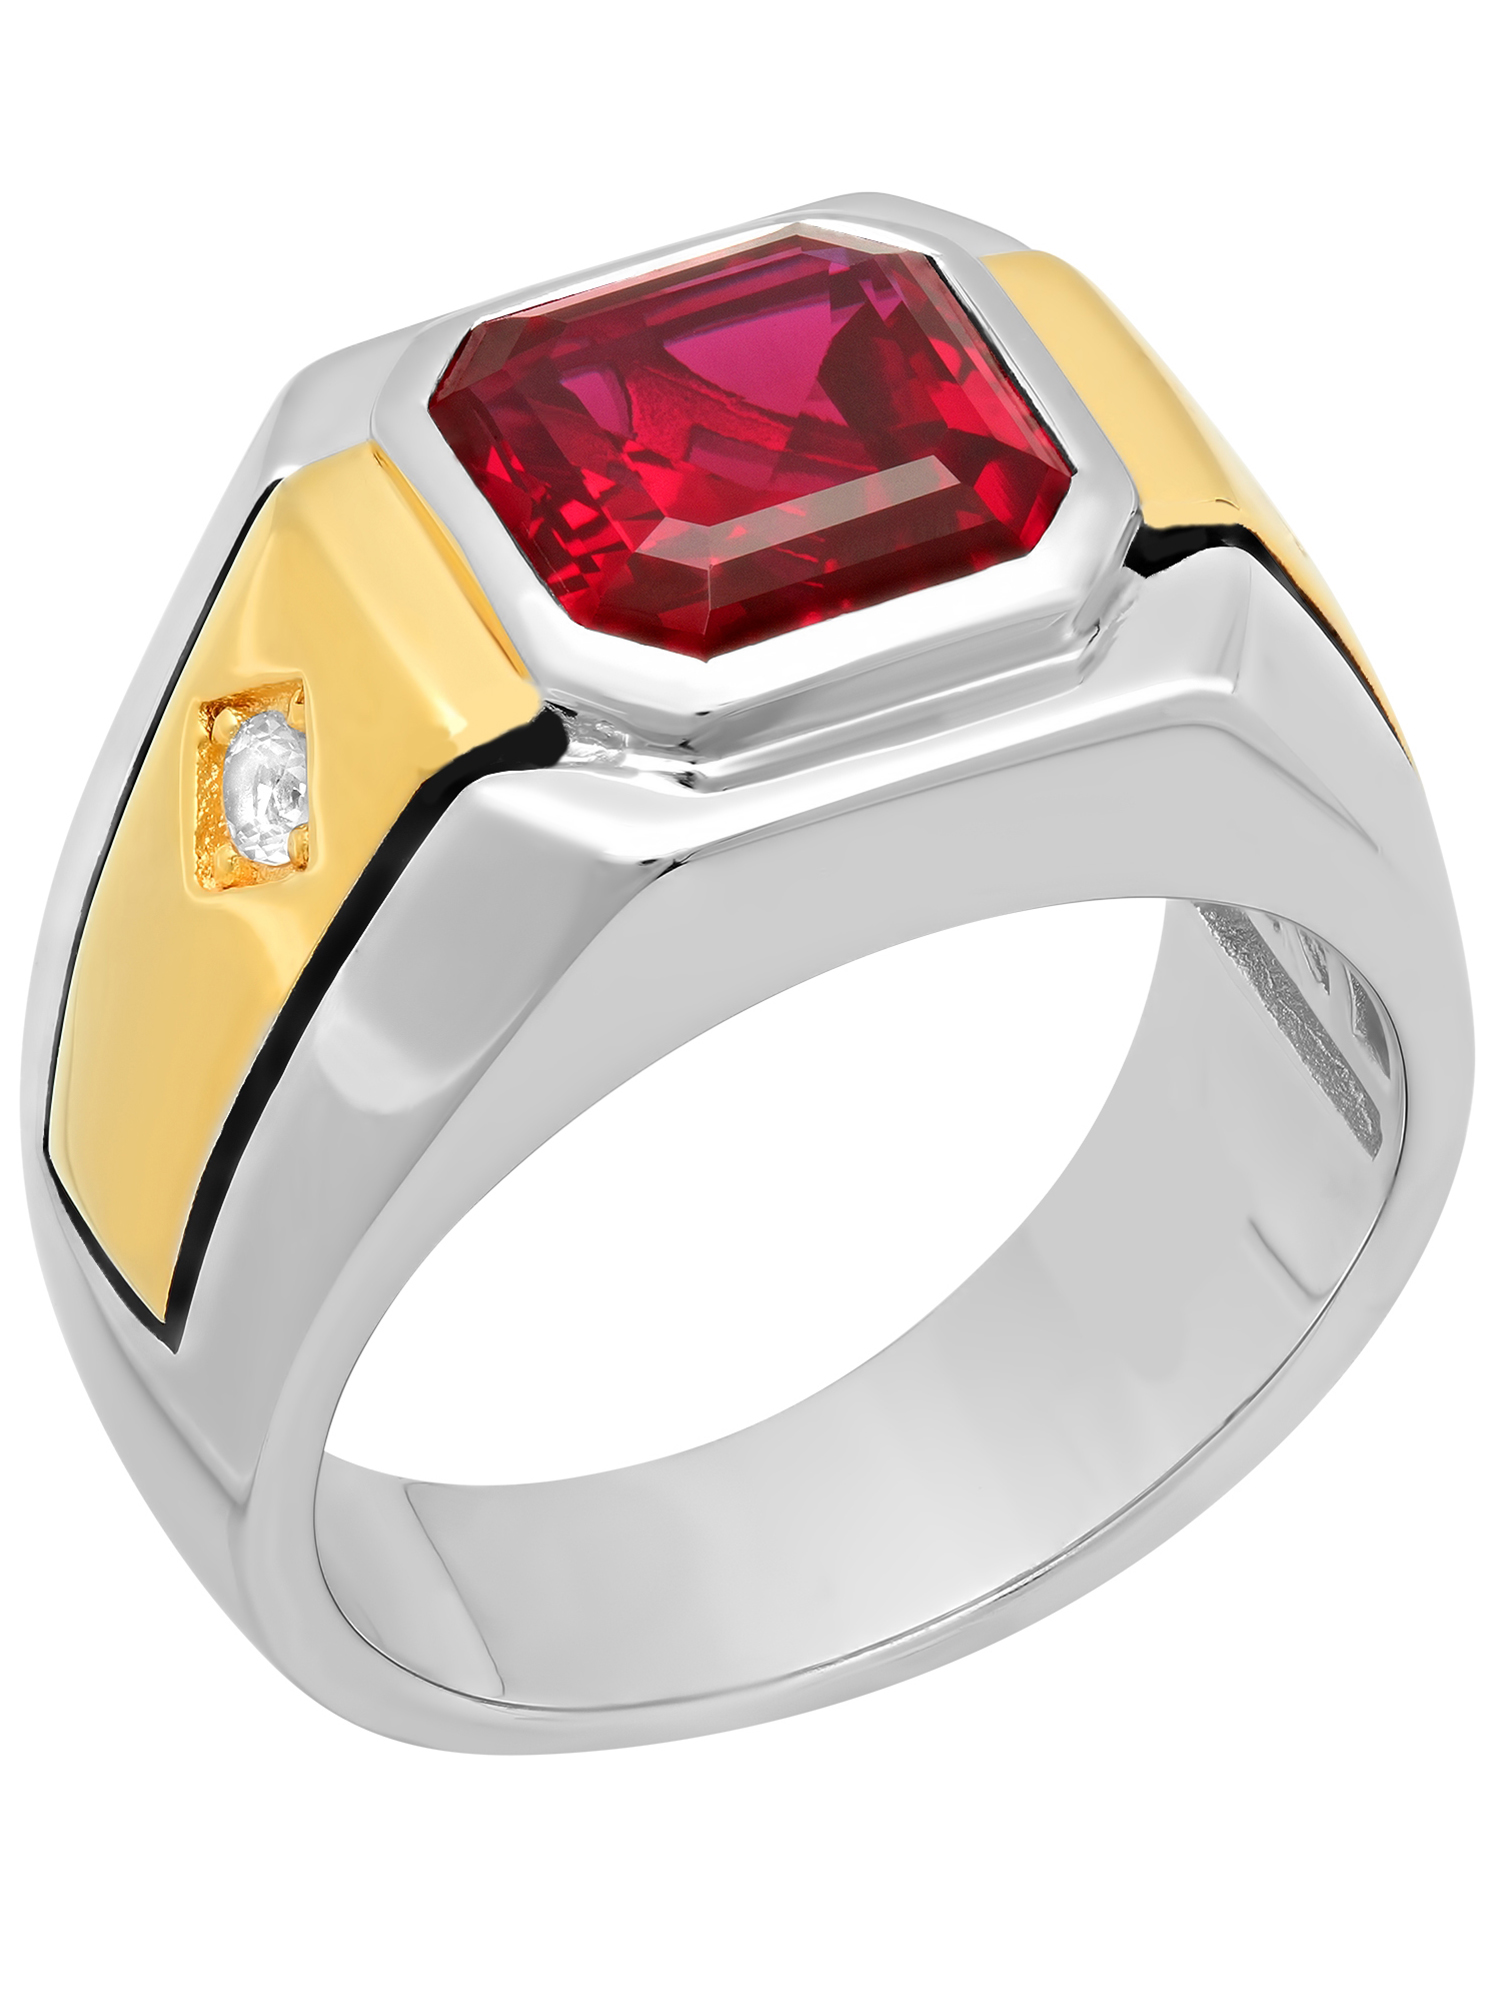 Men's 14K Gold Plated Sterling Silver Cubic Zirconia and Ruby Gemstone Ring